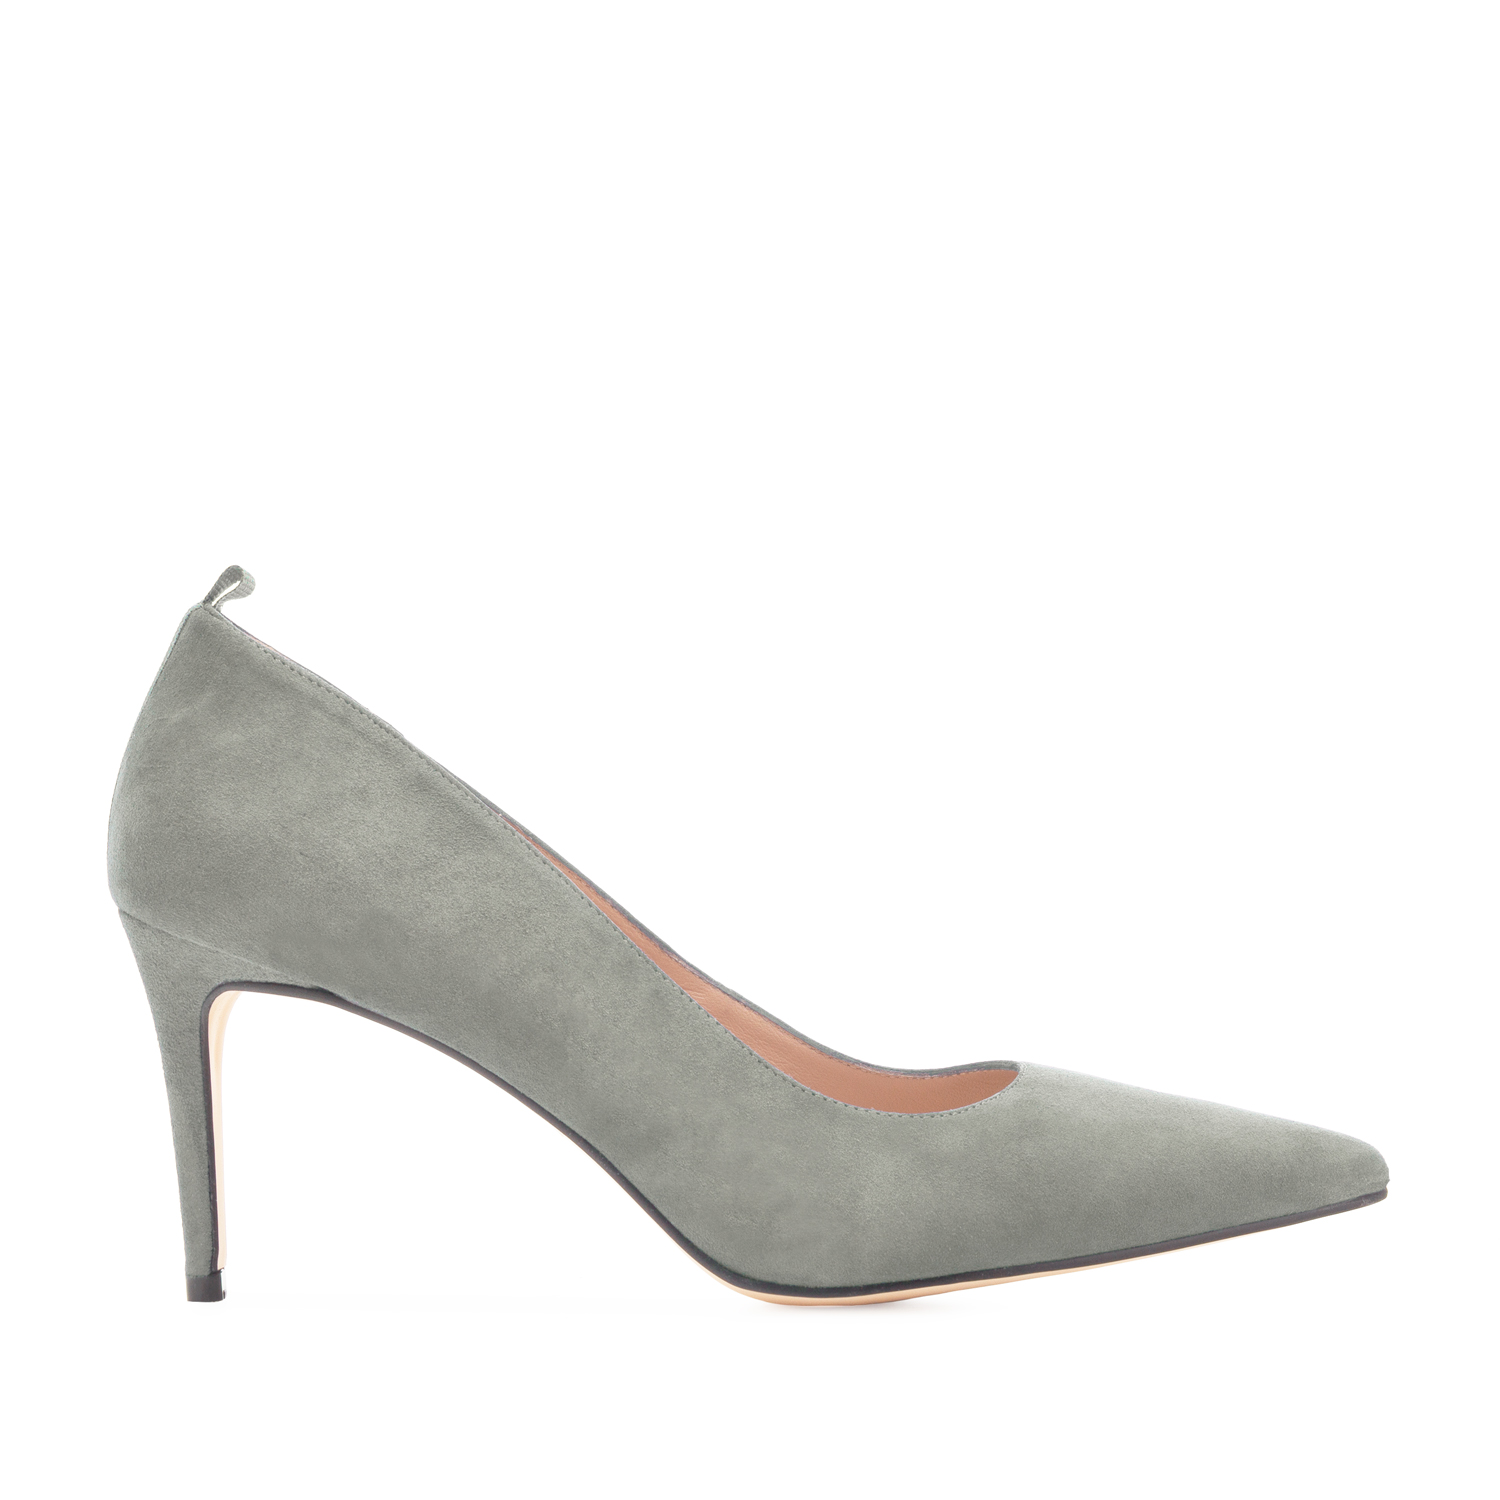 Stilettos in Gray Suede Leather